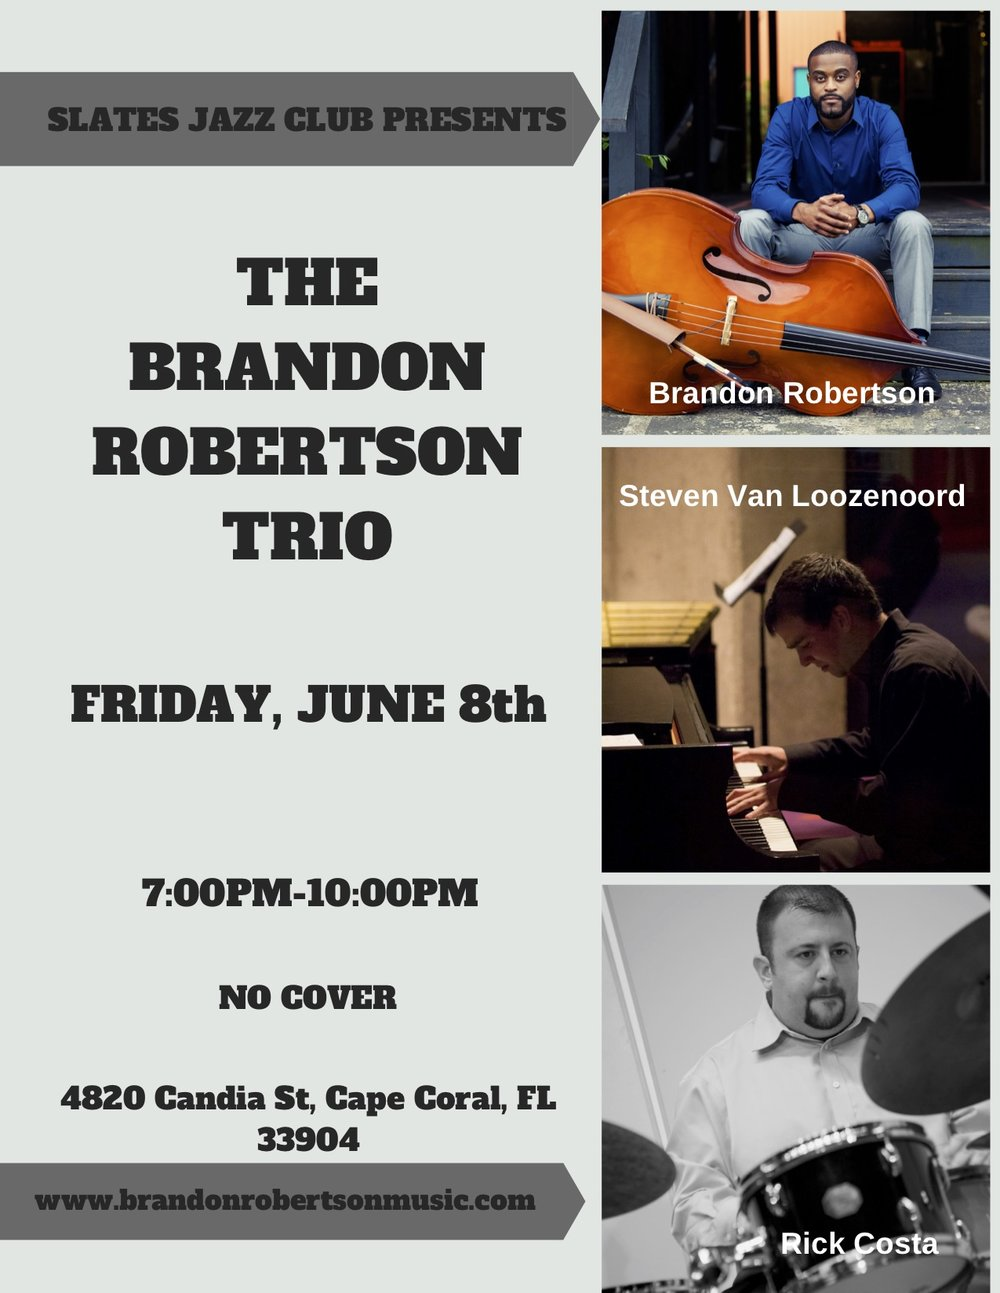 BRANDON ROBERTSON TRIO SLATES JAZZ CLUB 6:8:18.jpg